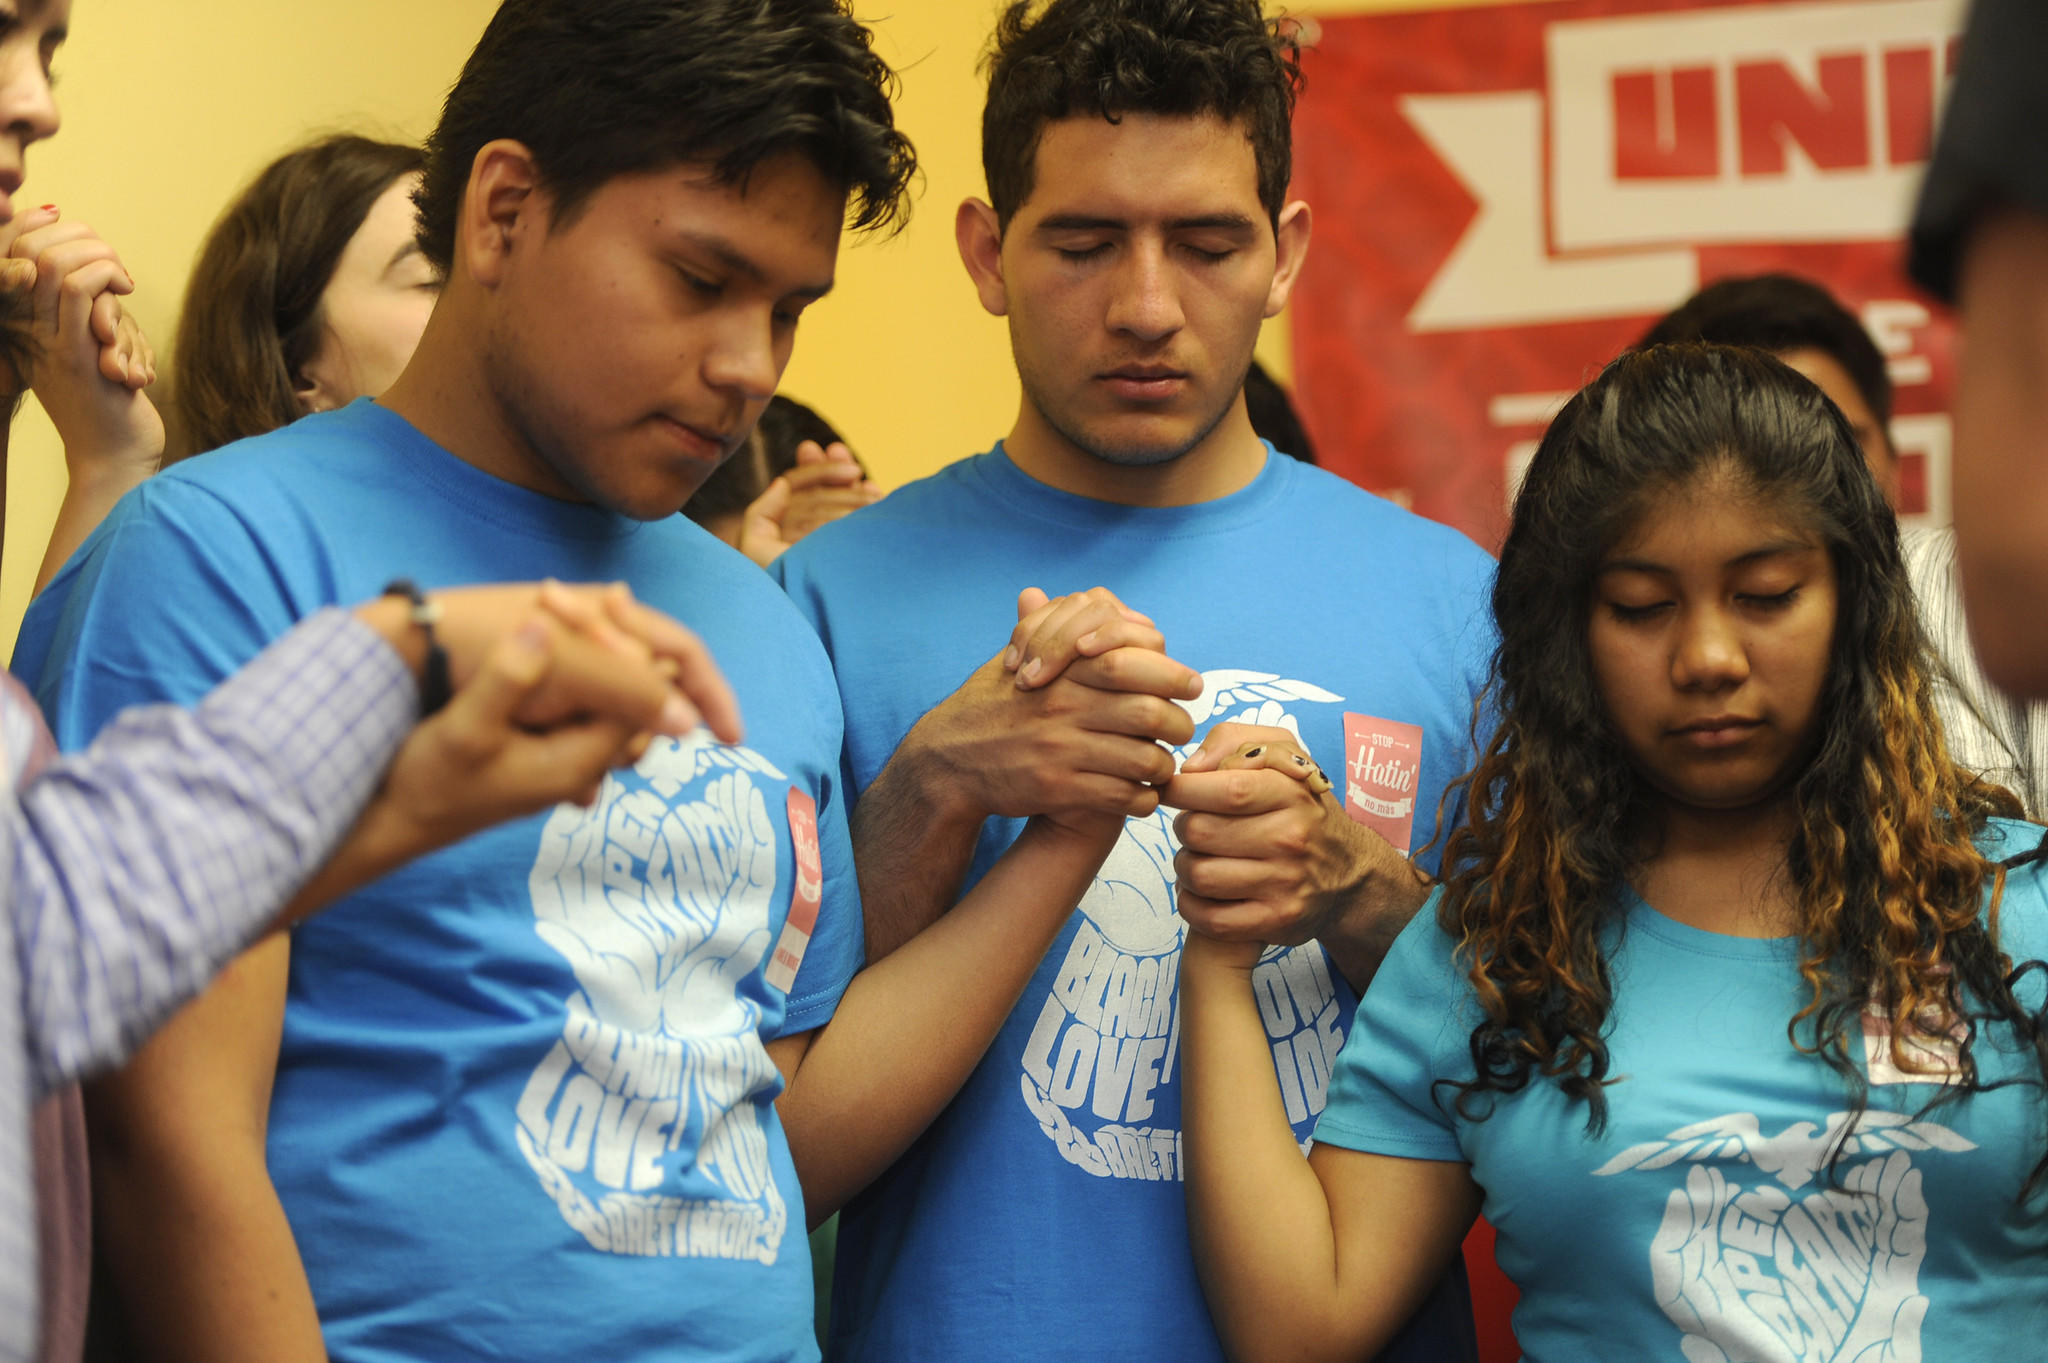 Left to right, praying at the end of a press conference: Jose Dominguez, Edwin Vasquez, Yanderi Hernandez. Representatives from hispanic and African American communities held a press conference at CASA de Maryland regarding ideas to prevent violence between the two communities.